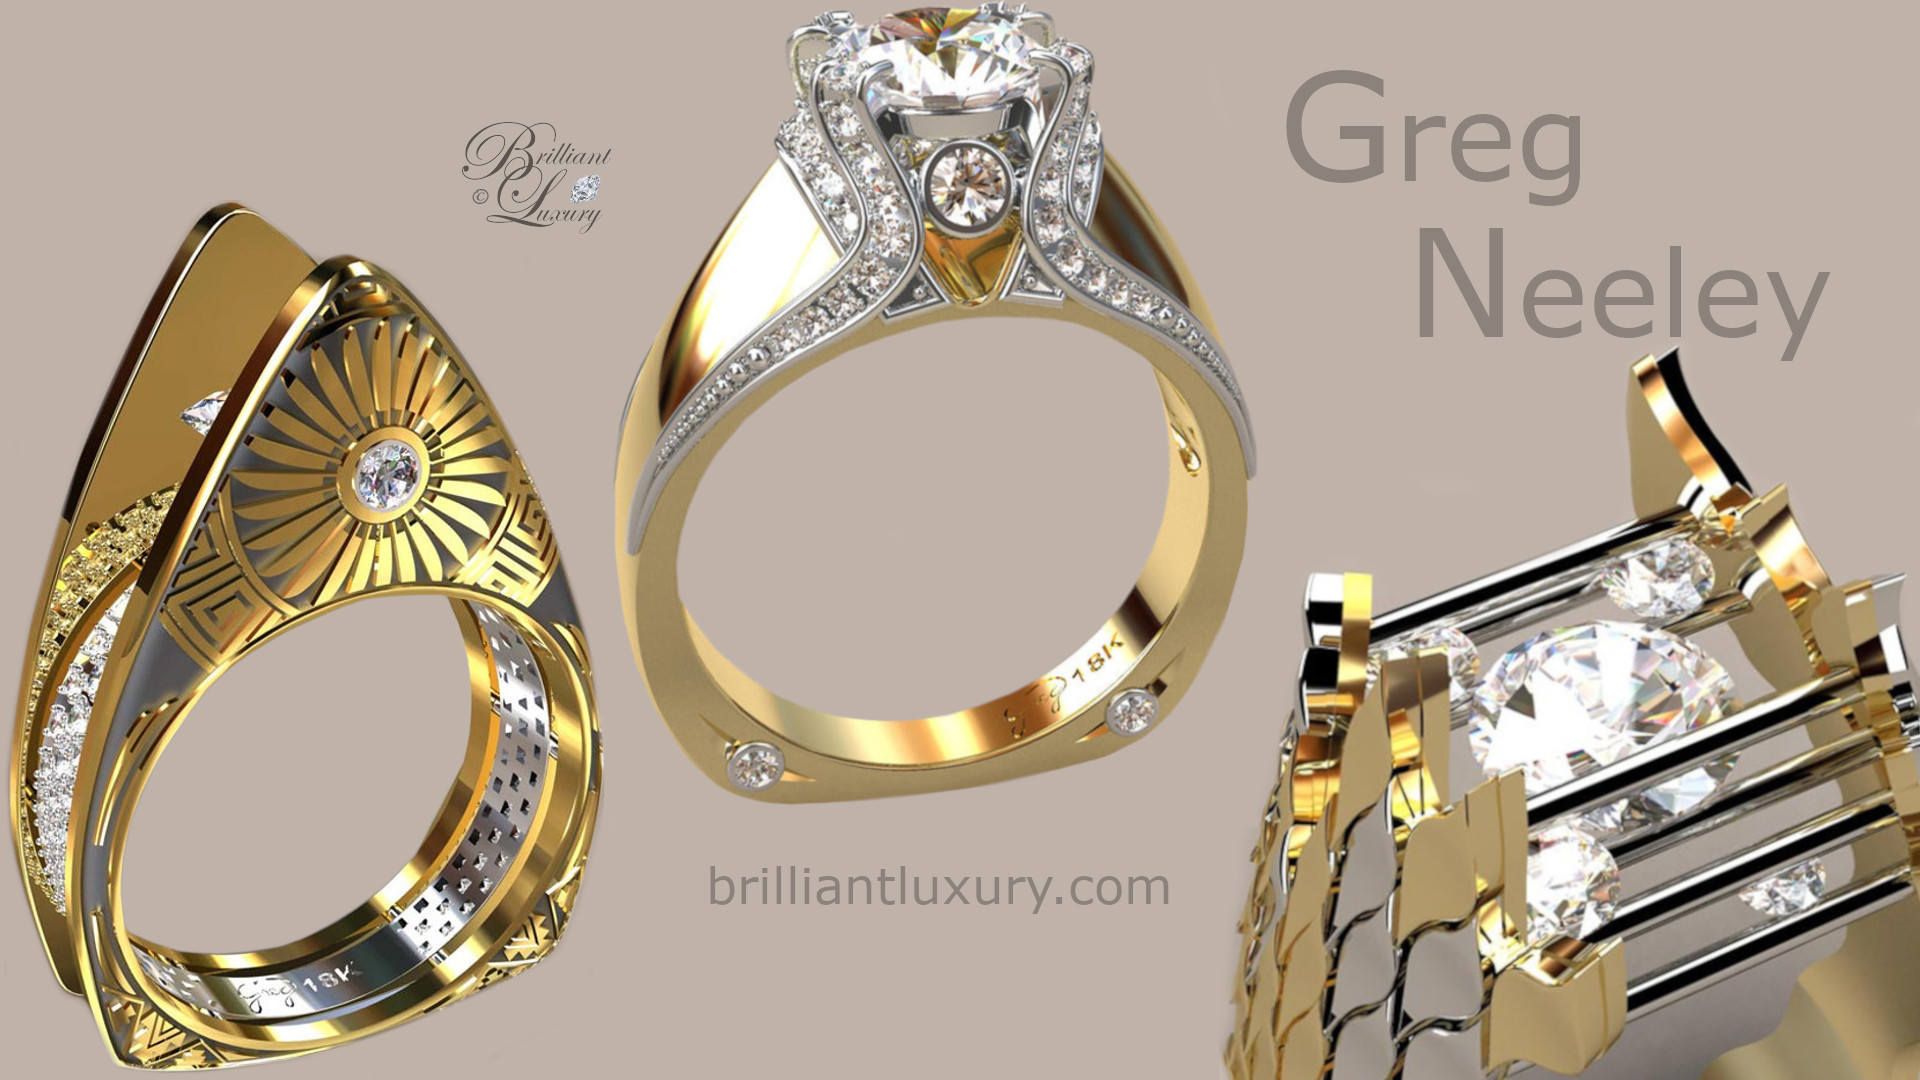 Greg Neeley Bridal Jewelry